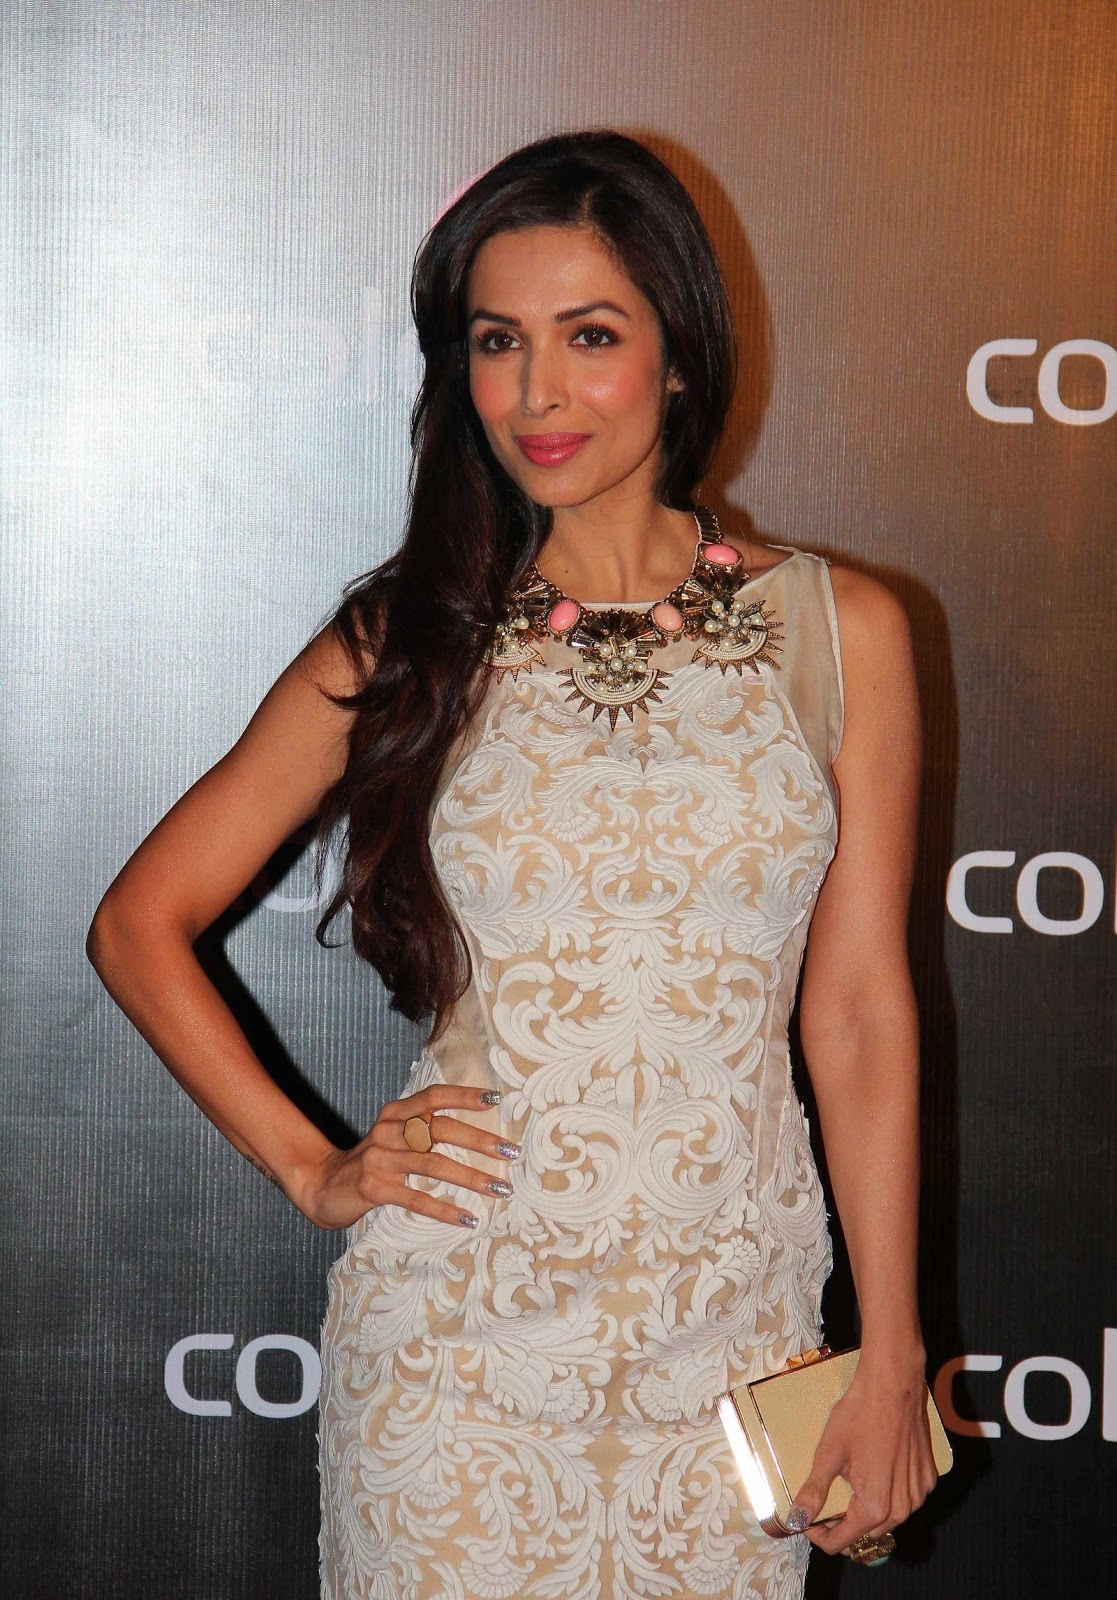 Malaika Arora Khan Full HD Images & Wallpapers